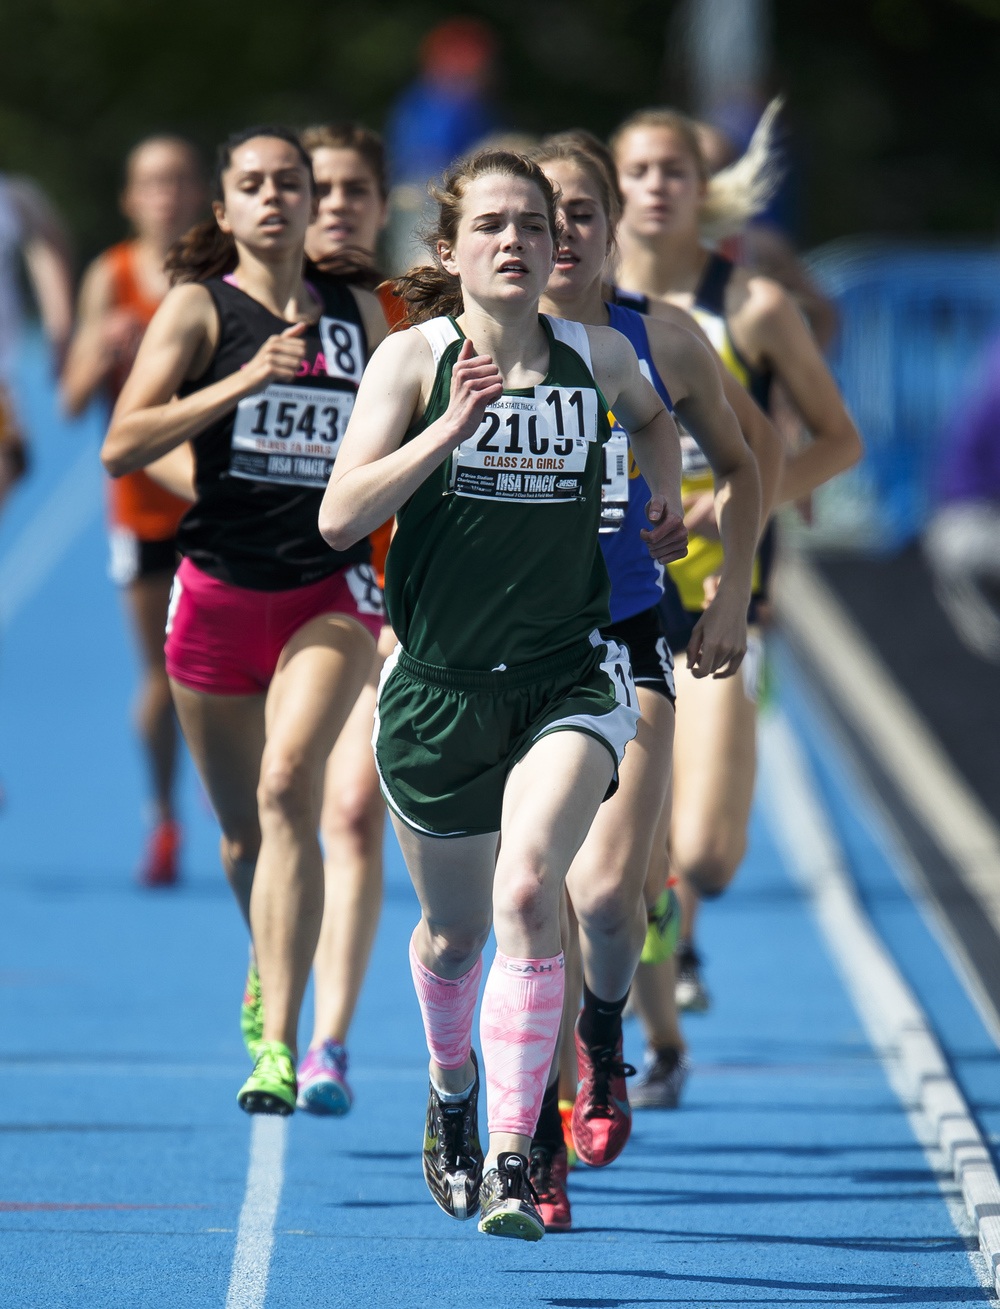 Boylan Catholic's Delaney Appino leads the pack down the track in the opening laps of the Class 2A 1600-Meter Run during the 2016 IHSA Girls State Track and Field Meet at O'Brien Stadium, Saturday, May 21, 2016, in Charleston, Ill. Appino finished 5th with a time of 5:03.61. Justin L. Fowler/The State Journal-Register